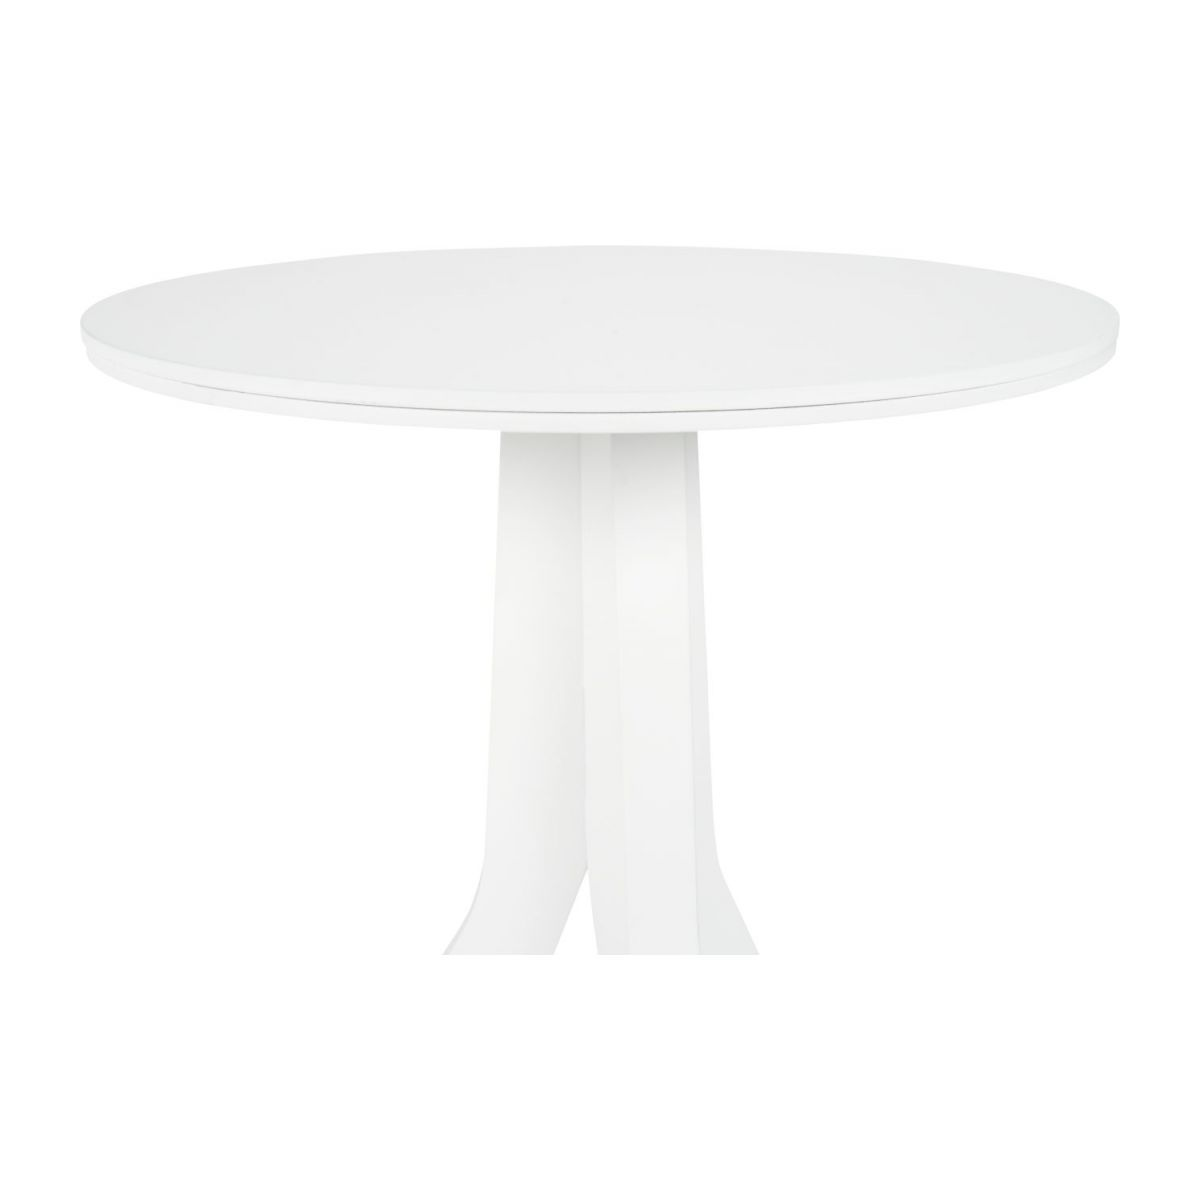 Table d'appoint en hêtre blanche n°3